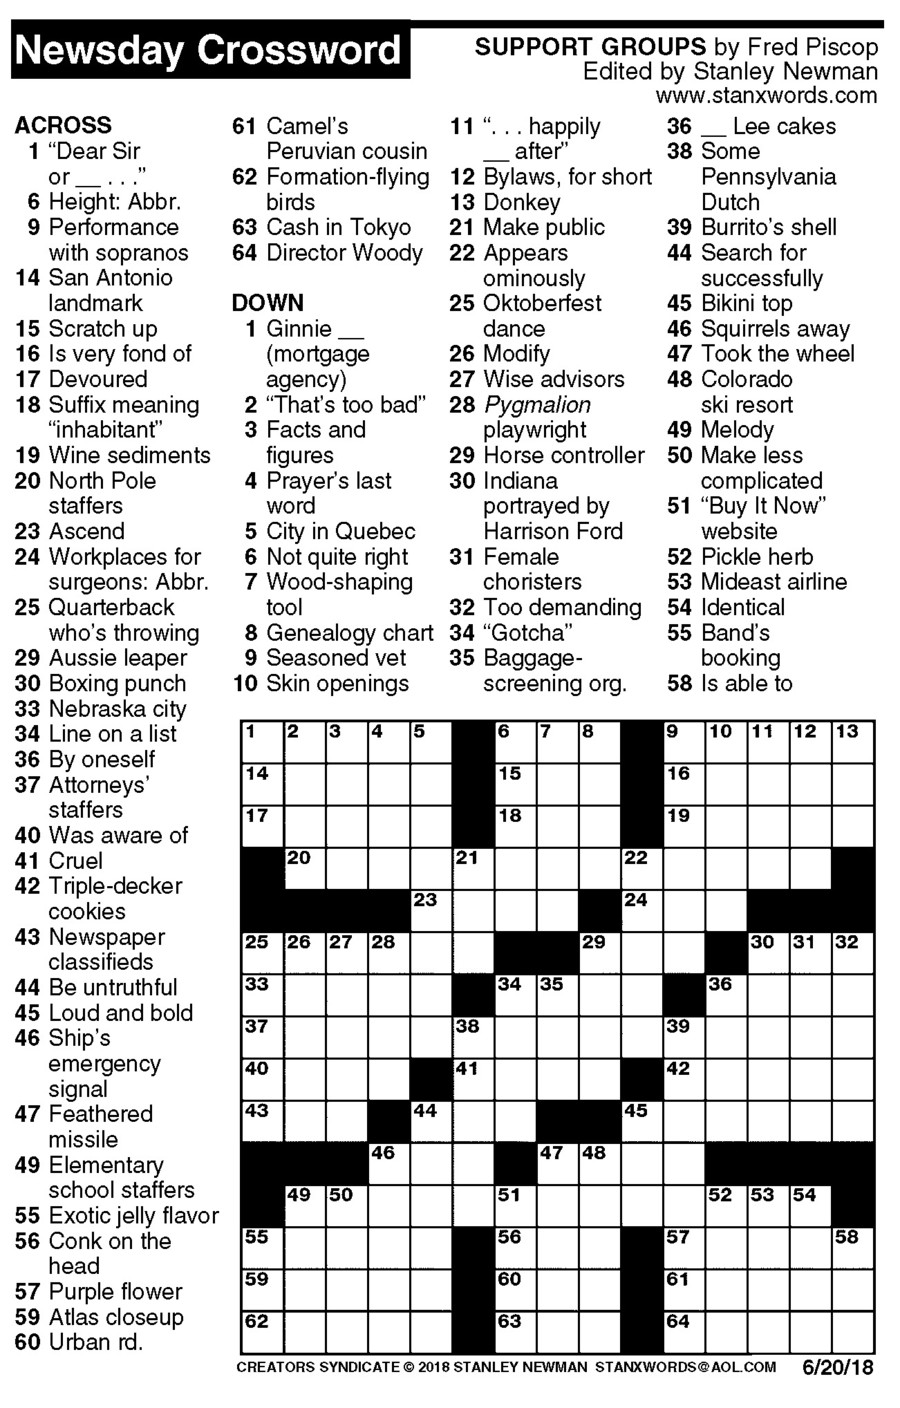 Newsday Crossword Puzzle for Jun 20, 2018